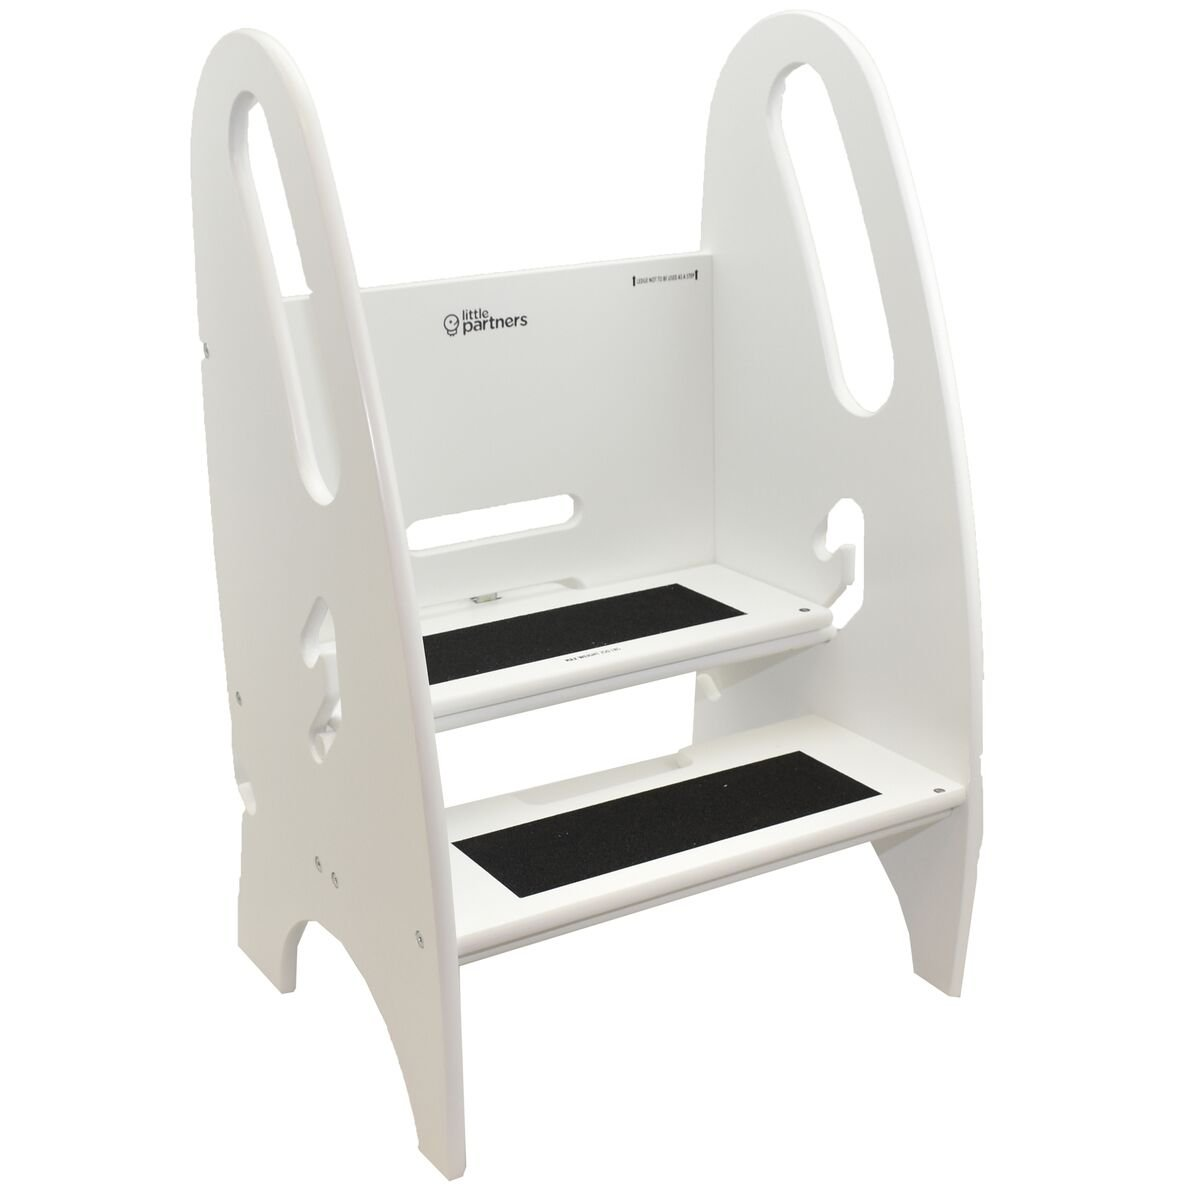 The Growing Step Stool by Little Partners (Soft White) – Adjustable Height Nursery, Kitchen or Bathroom Kids Footstool – Wooden Non-Tip Design for Both Toddlers & Adults (Supports Up To 250lbs) by Little Partners